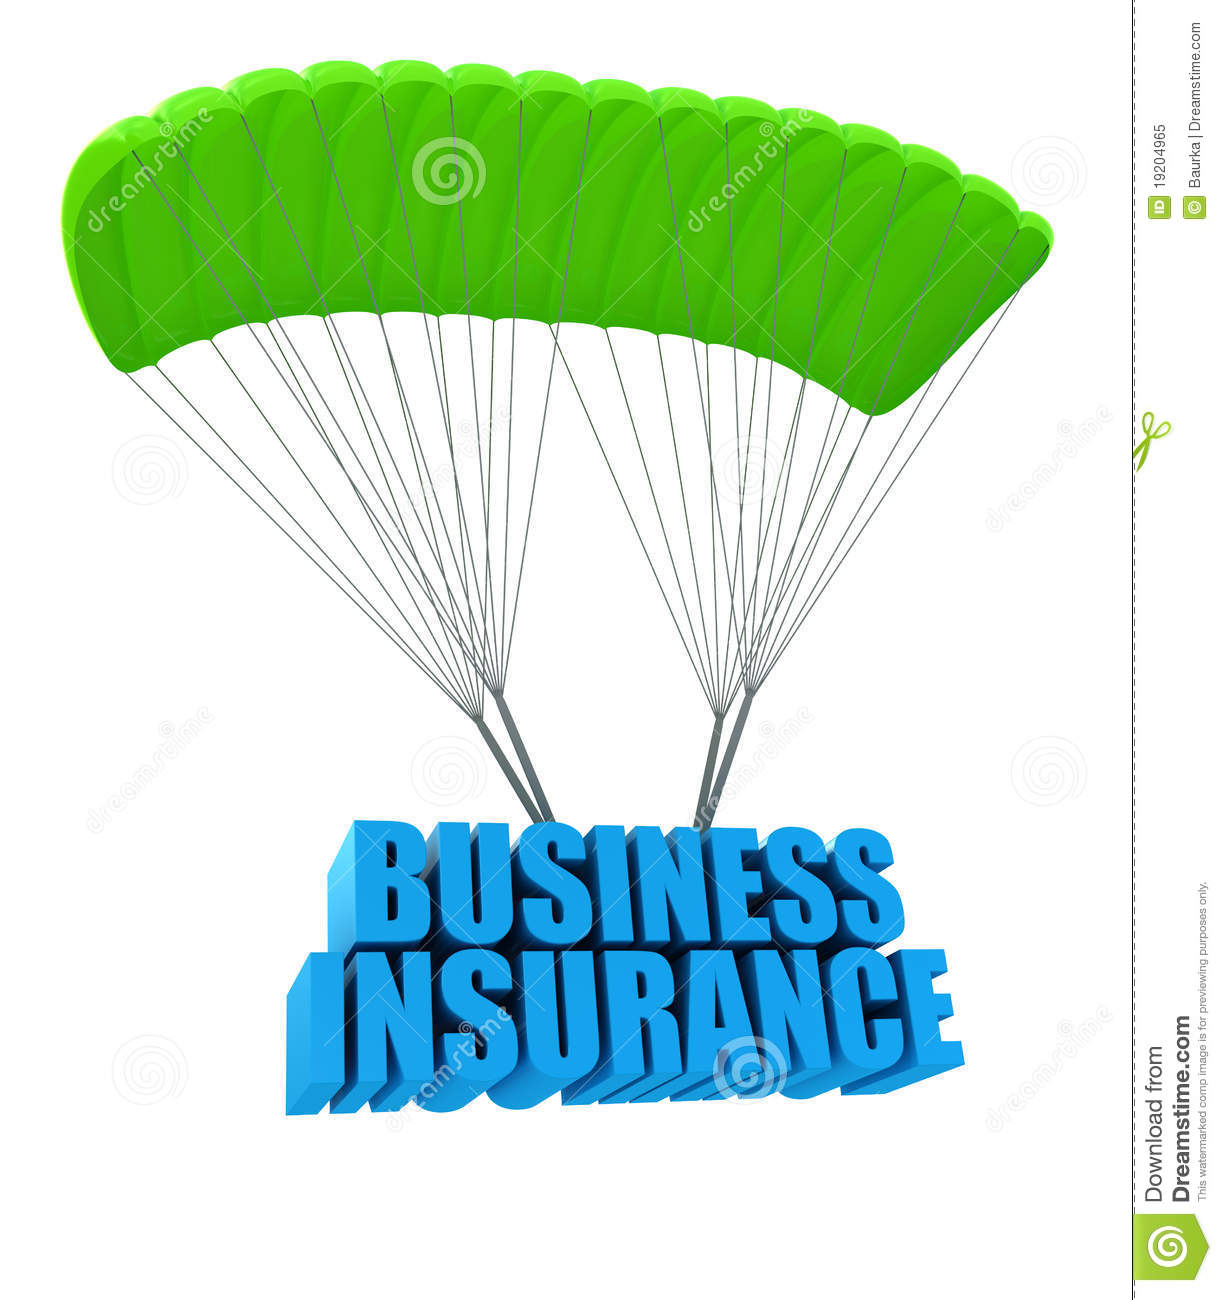 Business insurance concept isolated on white